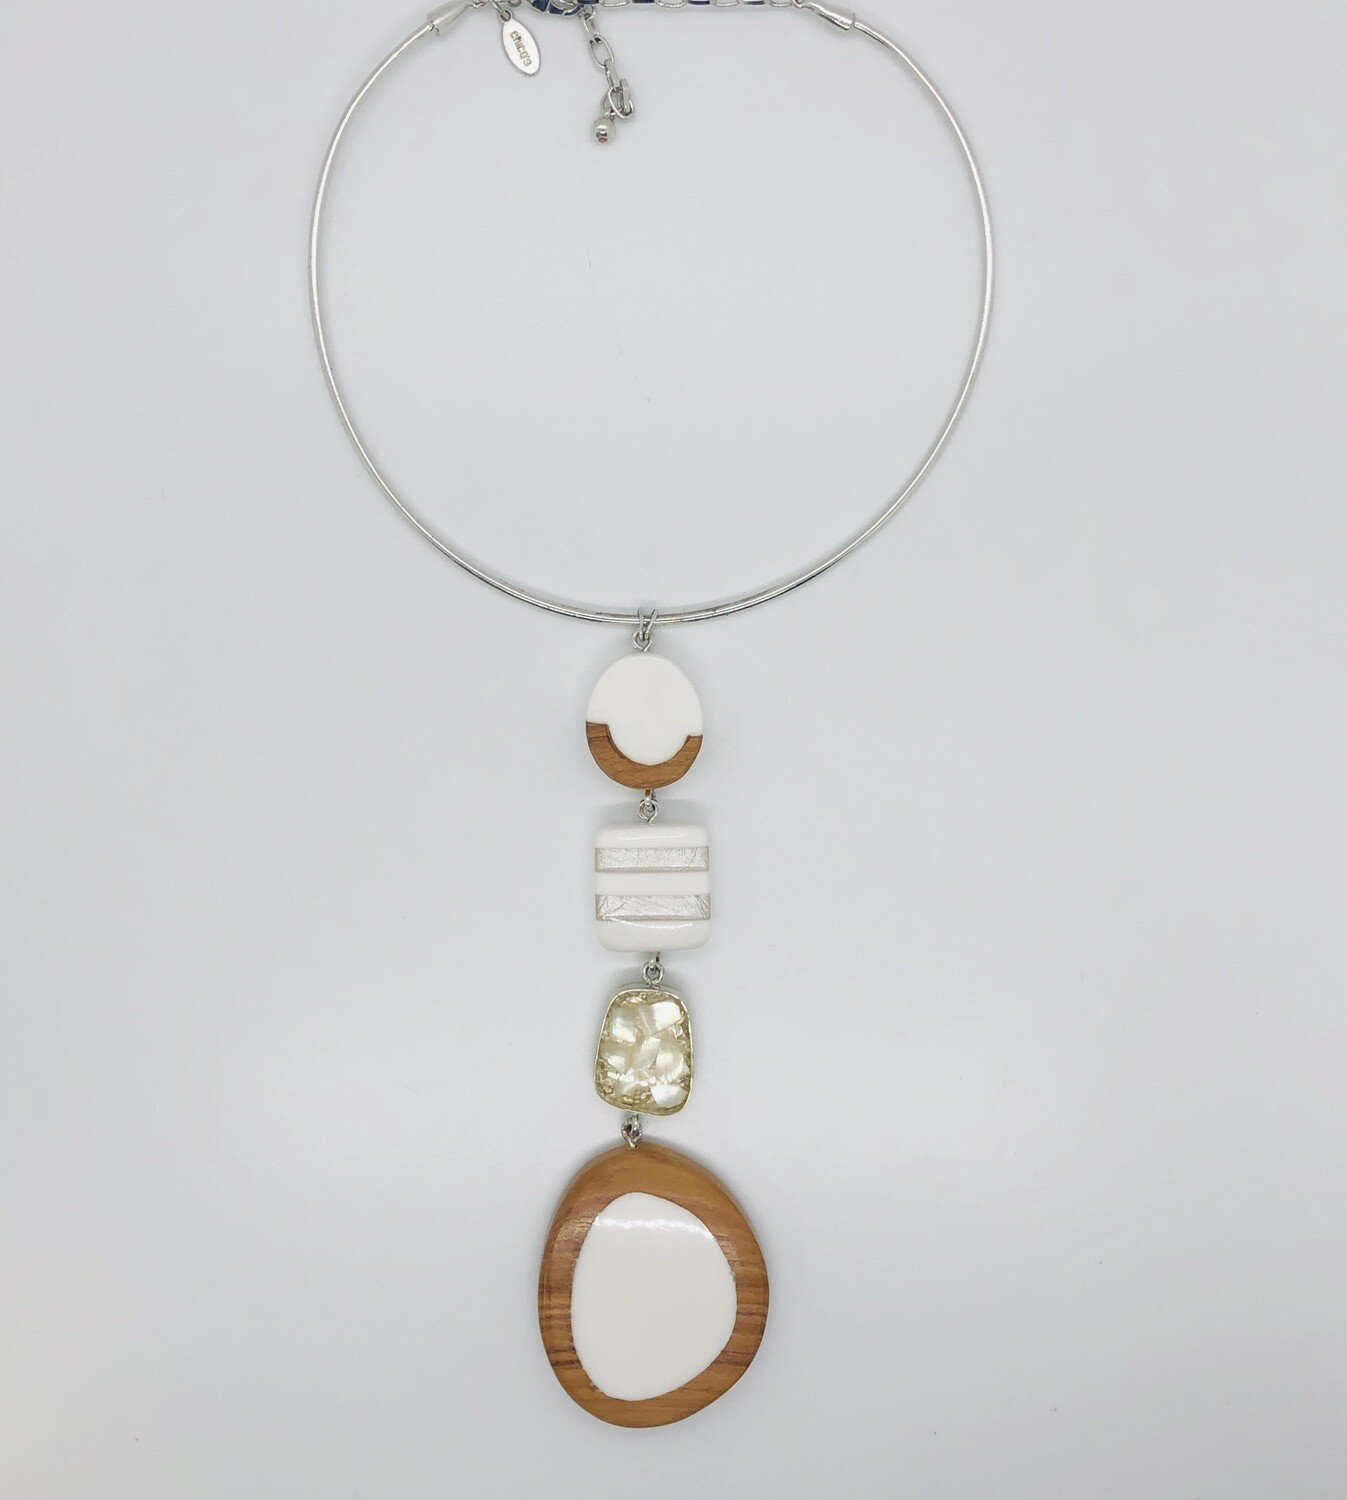 CHICO'S Silver Cable Necklace w/ Teak Wood & Large Stone Statement Pendant